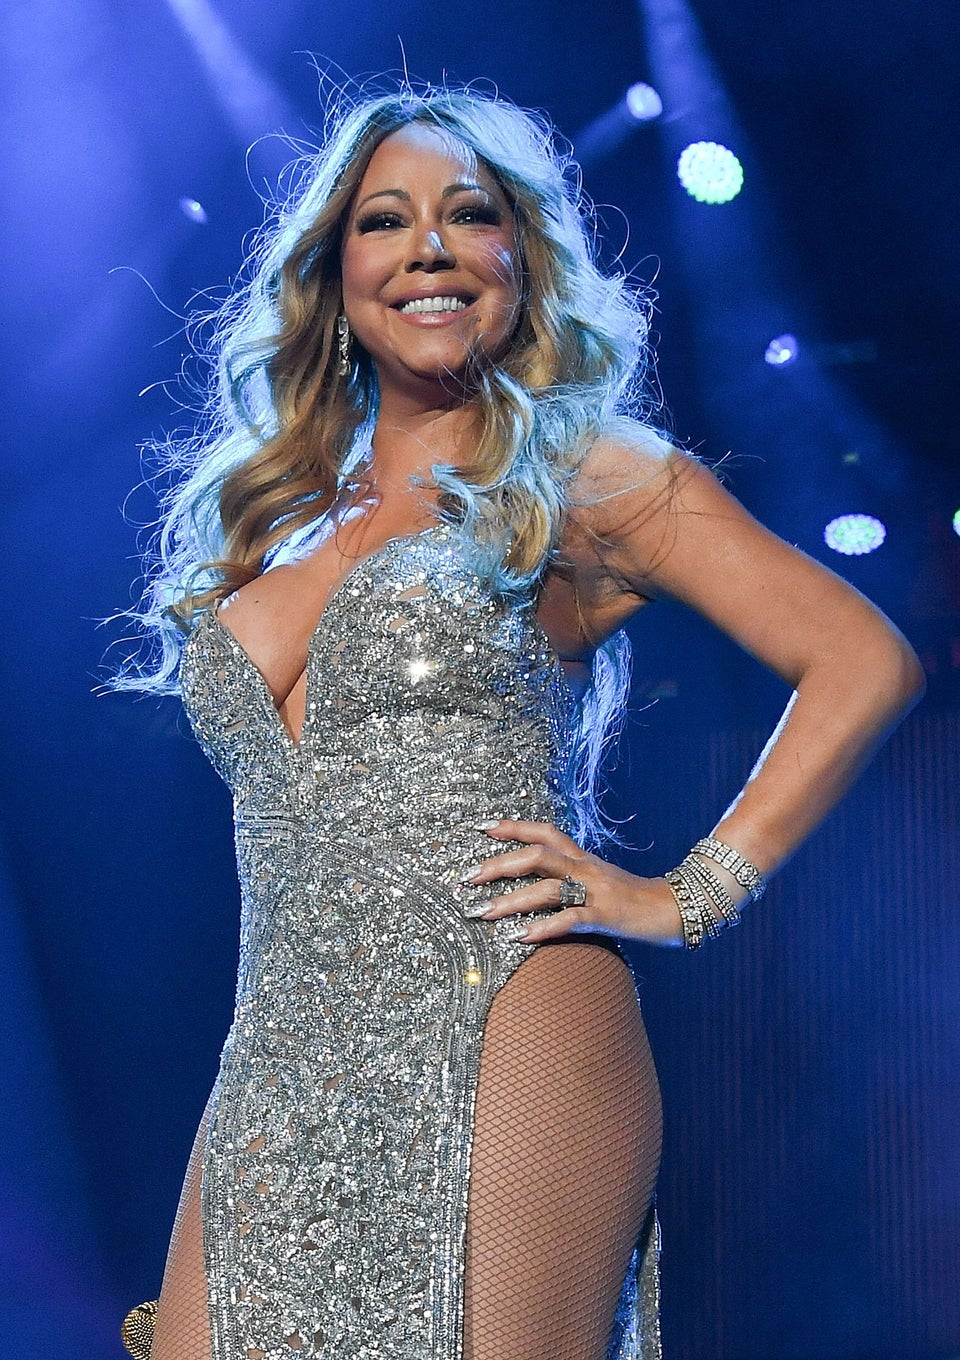 Mariah Carey Opens Up About Divorce, James Packer, And New Docu-Series